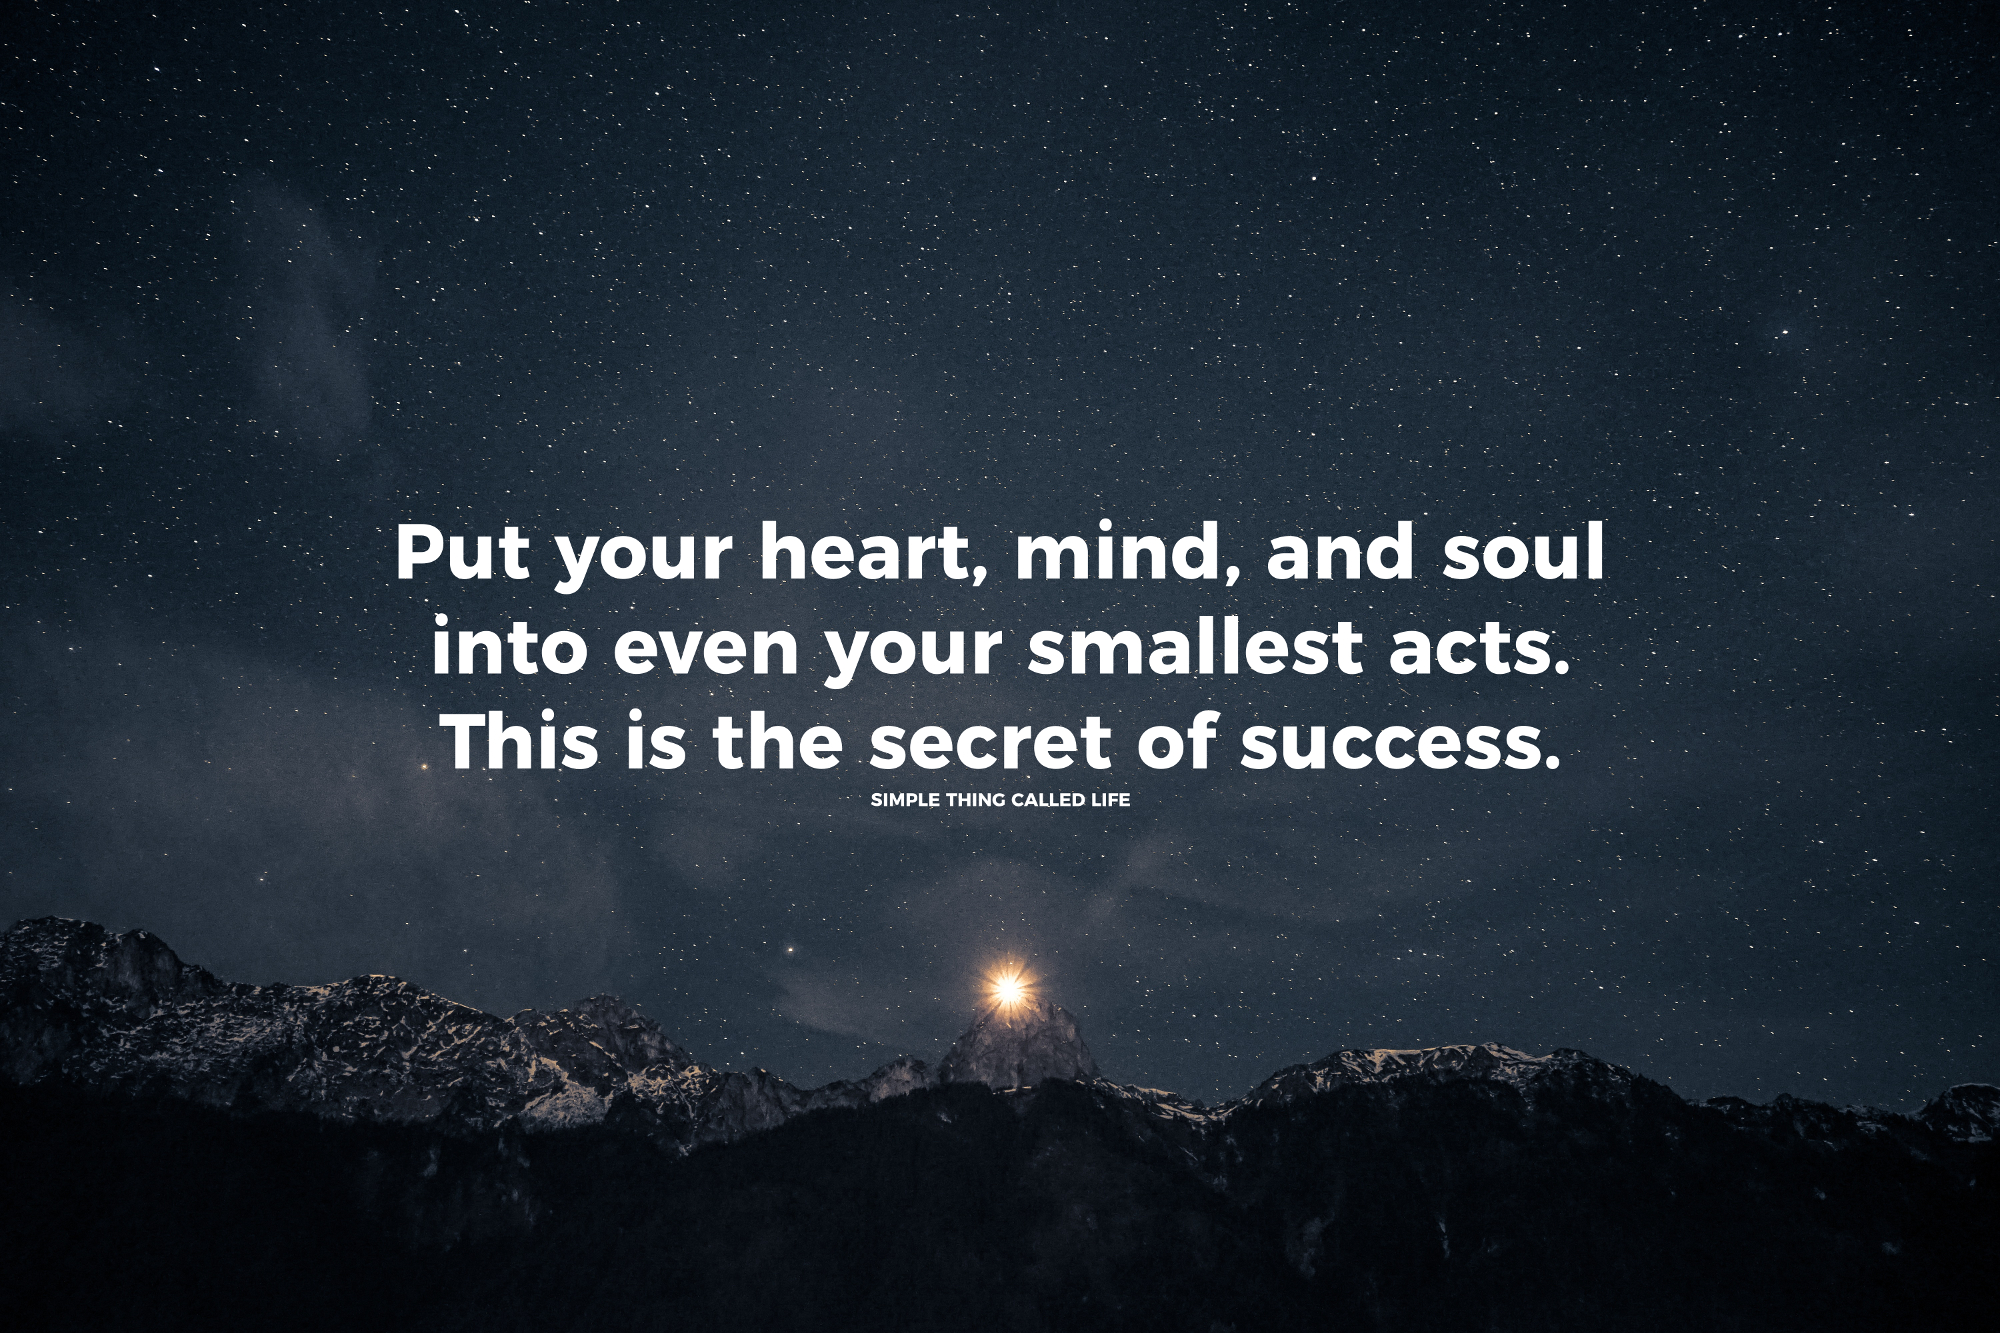 Inspirational Picture Quotes Or Great Souls: Put Your Heart, Mind, And Soul Into Even Your Smallest